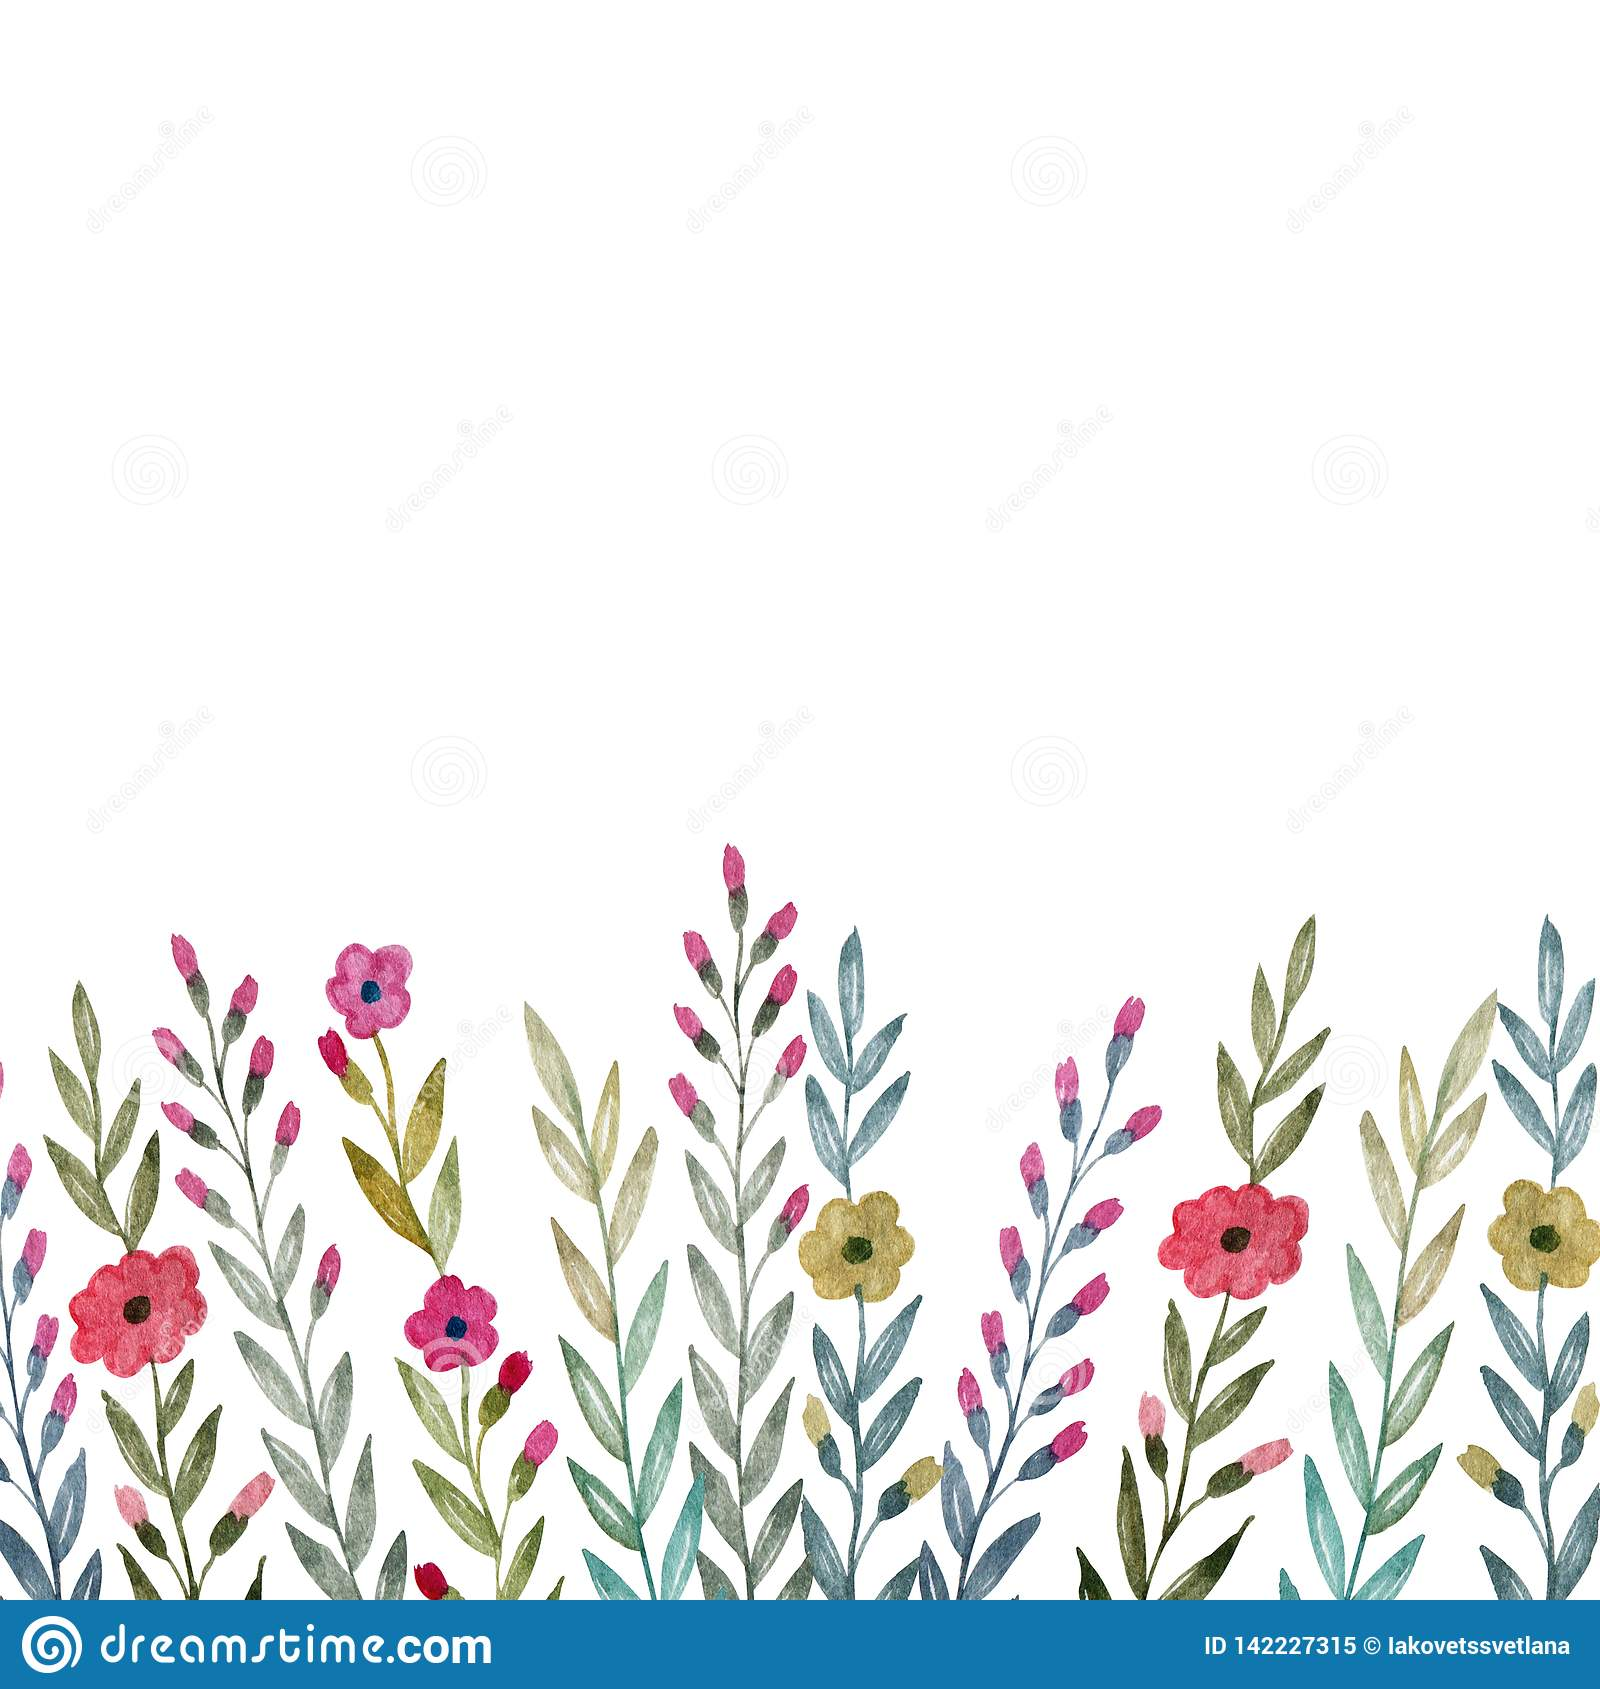 Background Of Flowers, Leaves And Plants. Watercolor Drawing